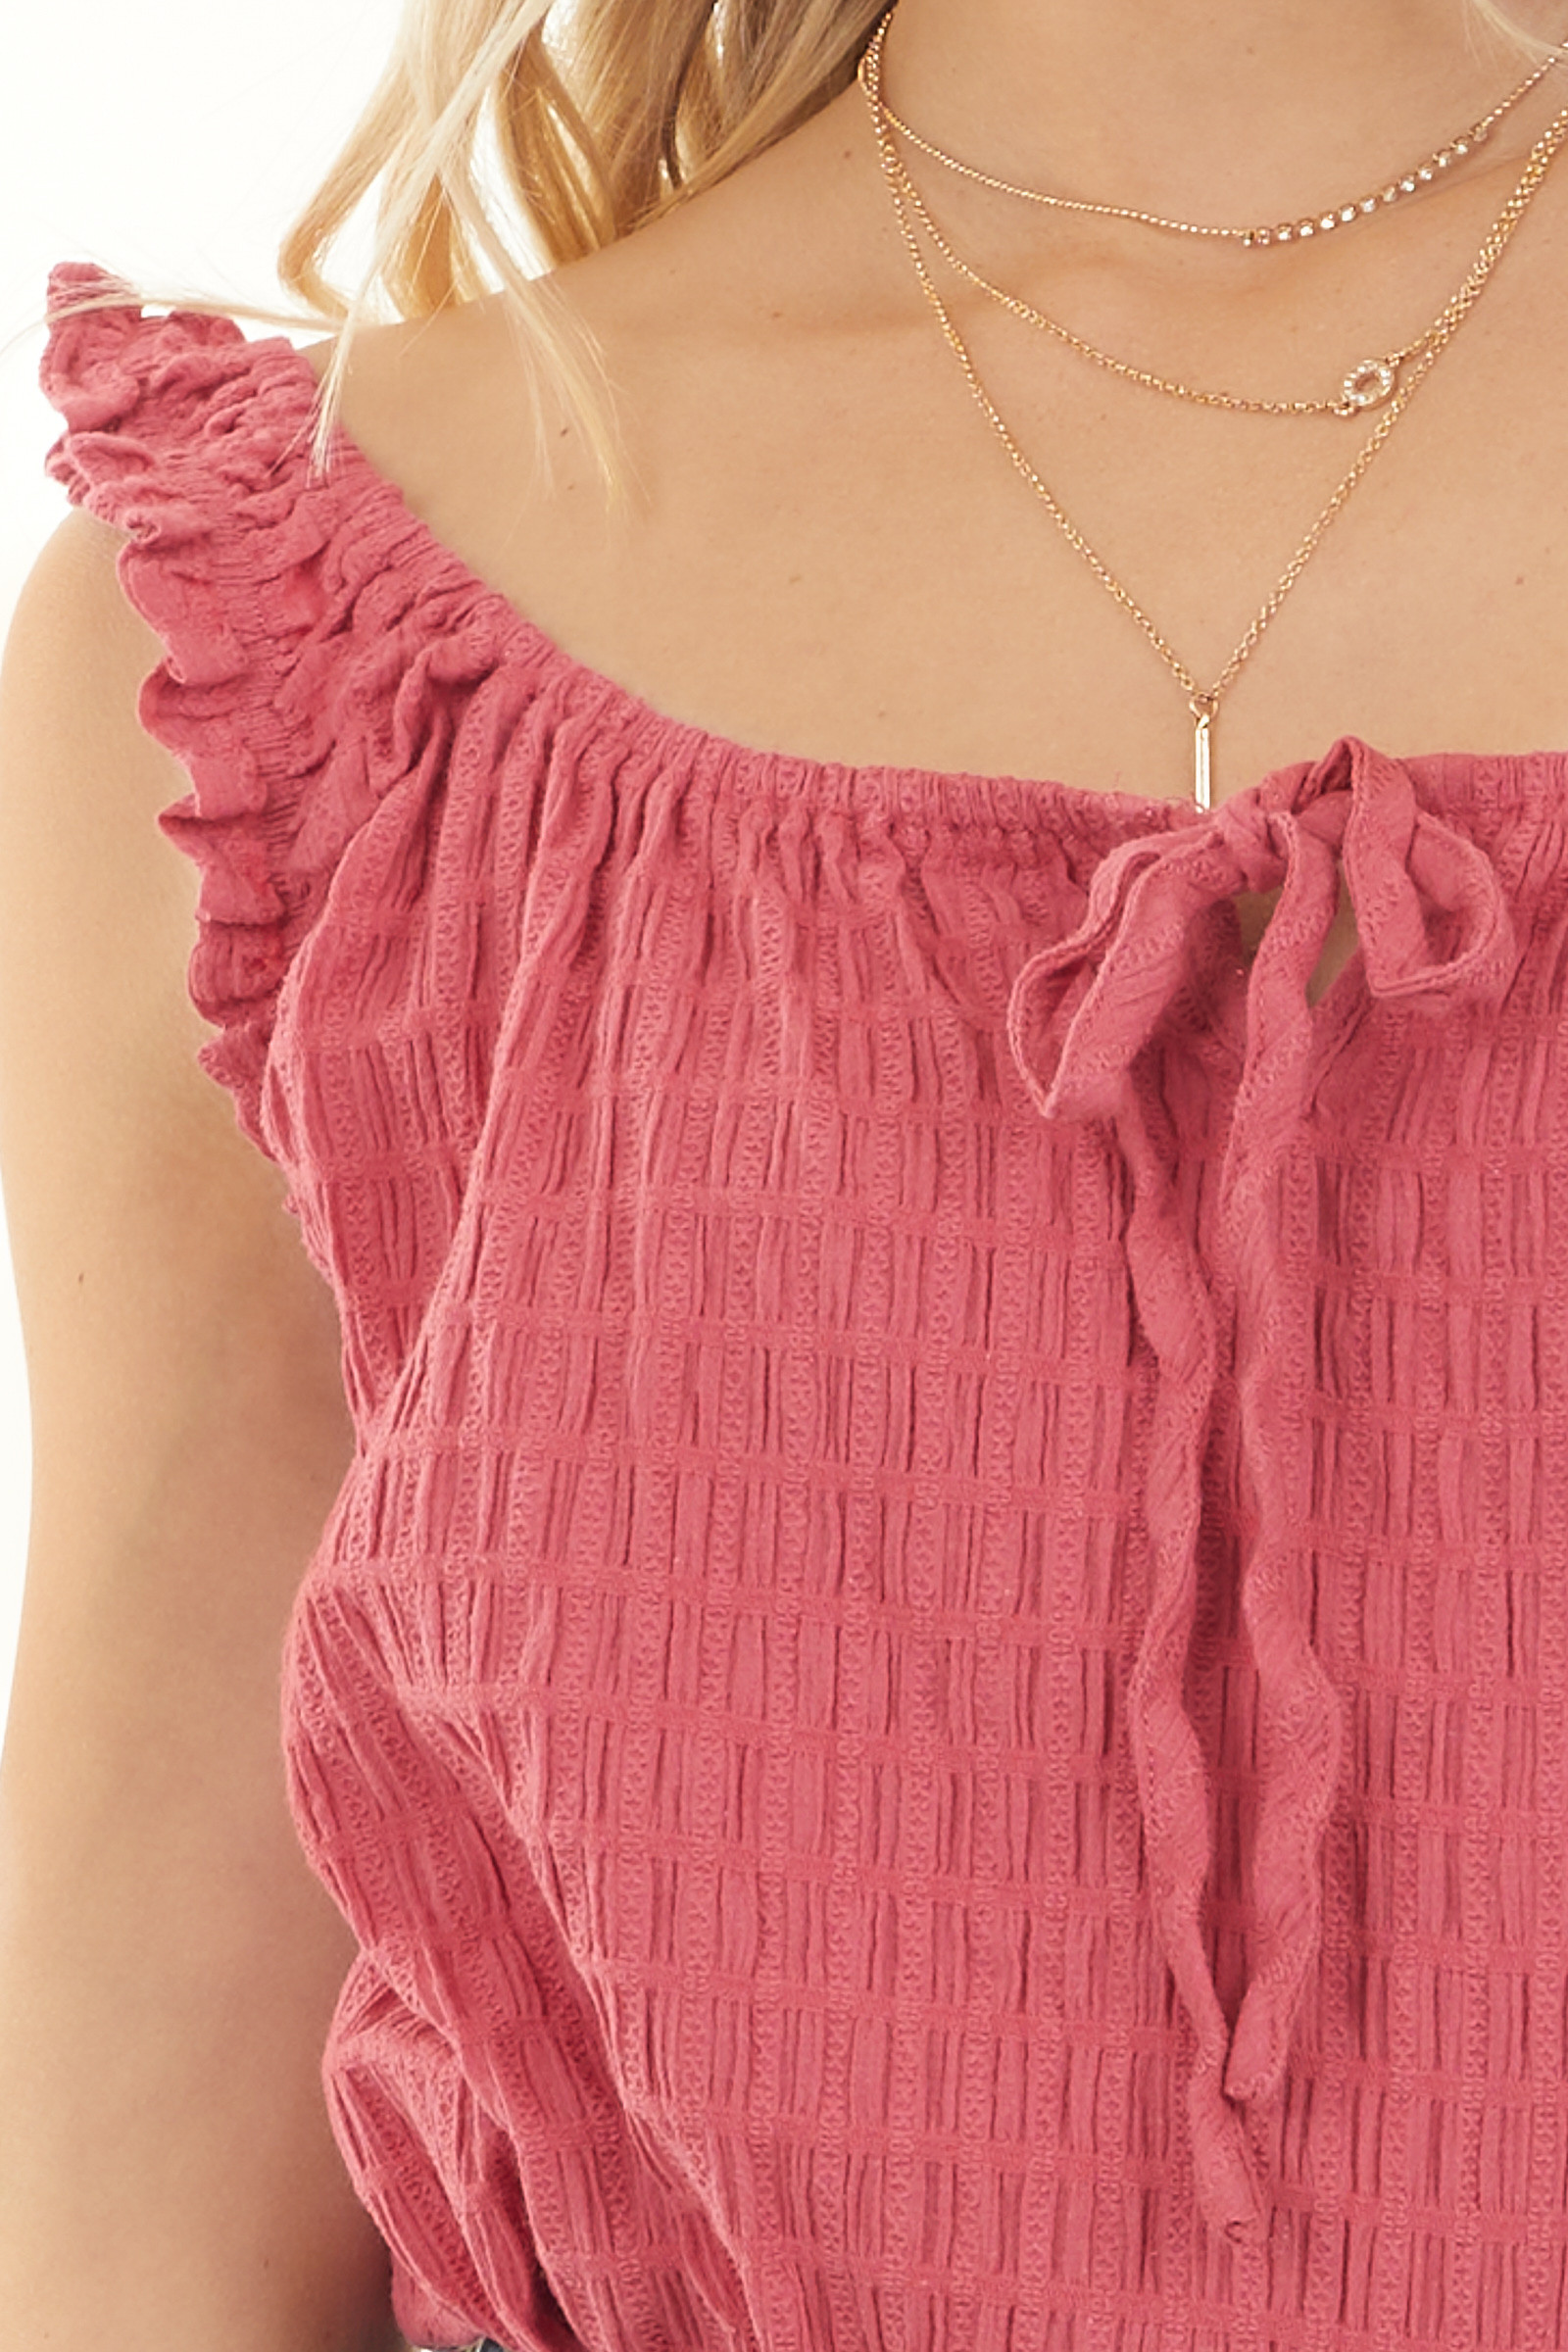 Crimson Red Textured Ruffle Sleeveless Top with Front Tie